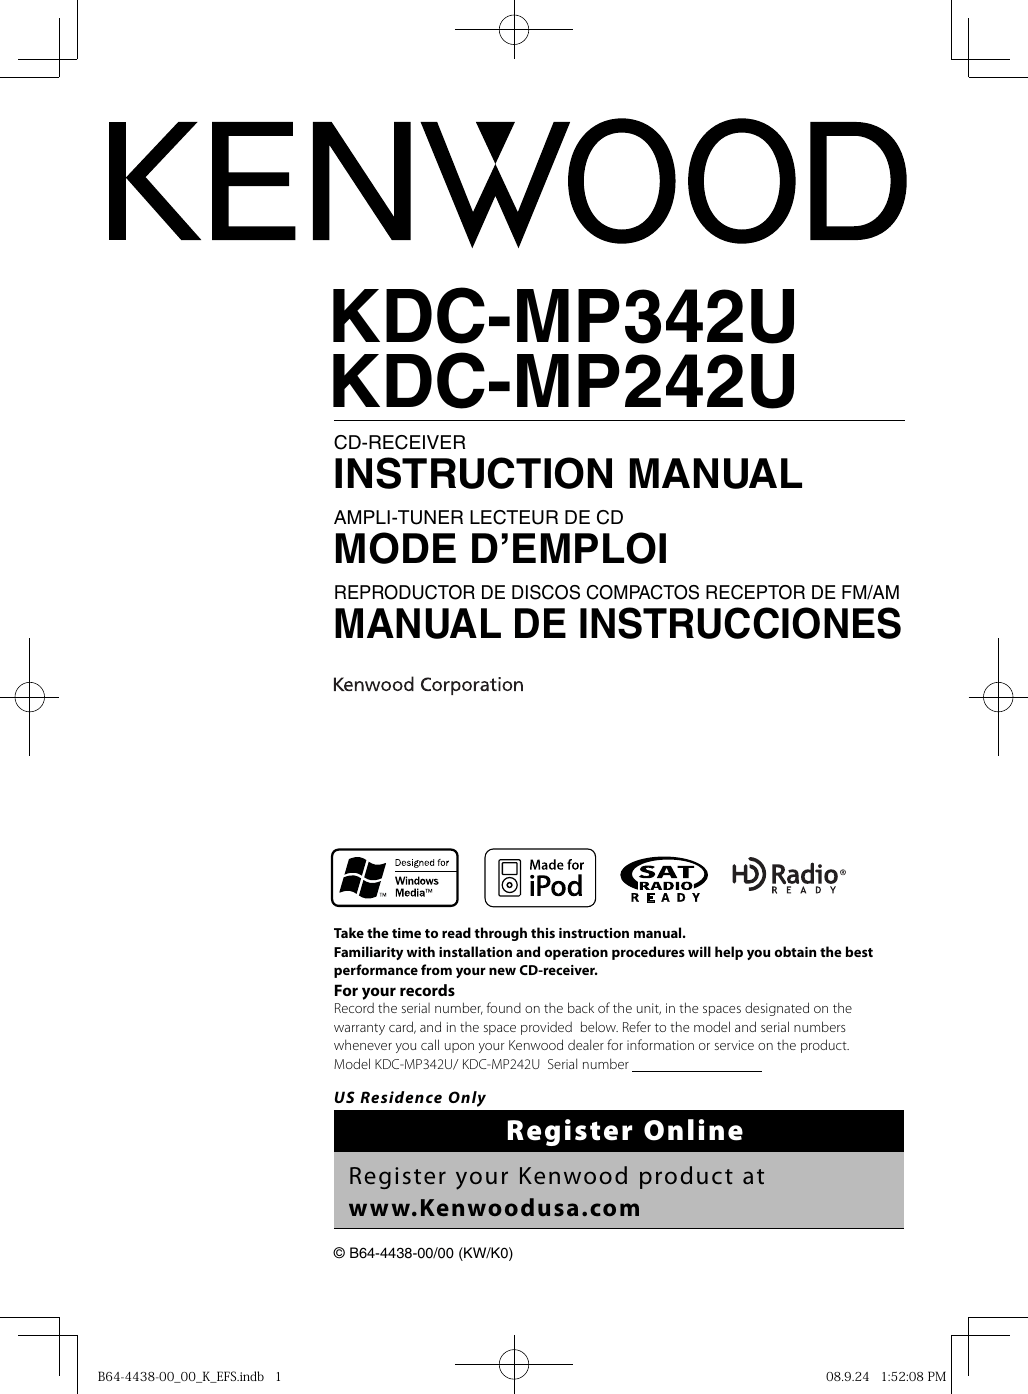 hight resolution of kenwood kdc mp342u owner s manual b64 4438 00 00 k efs indbkdc mp342u wiring diagram 18